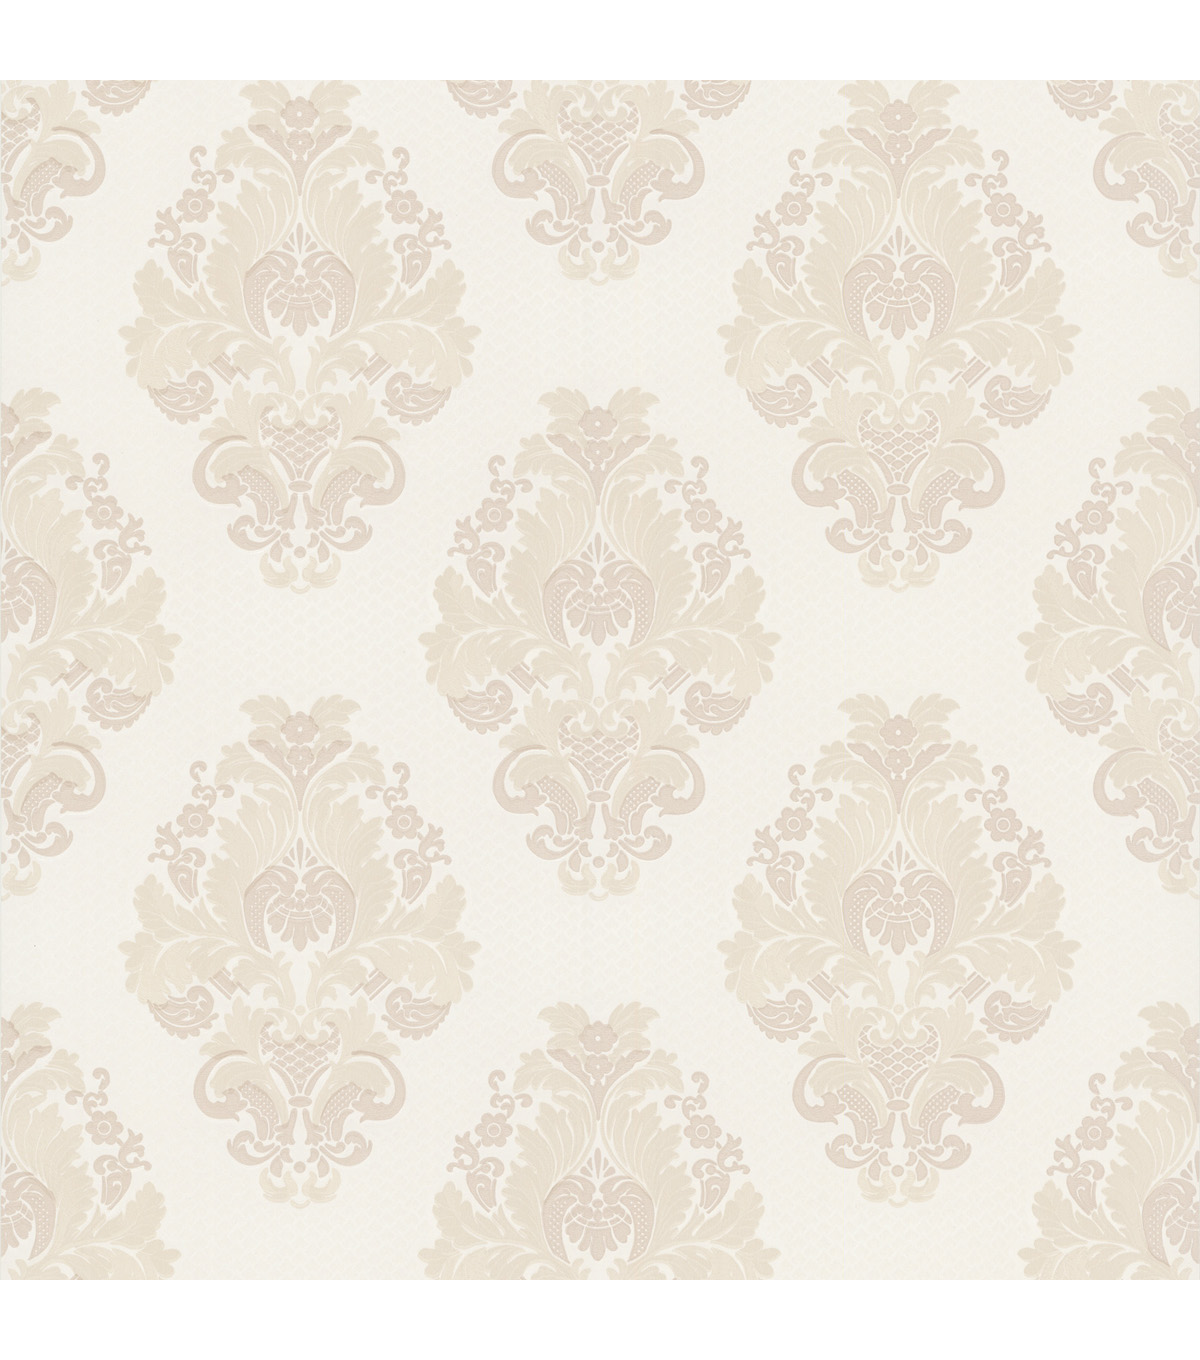 Bromley White Satin Damask Wallpaper